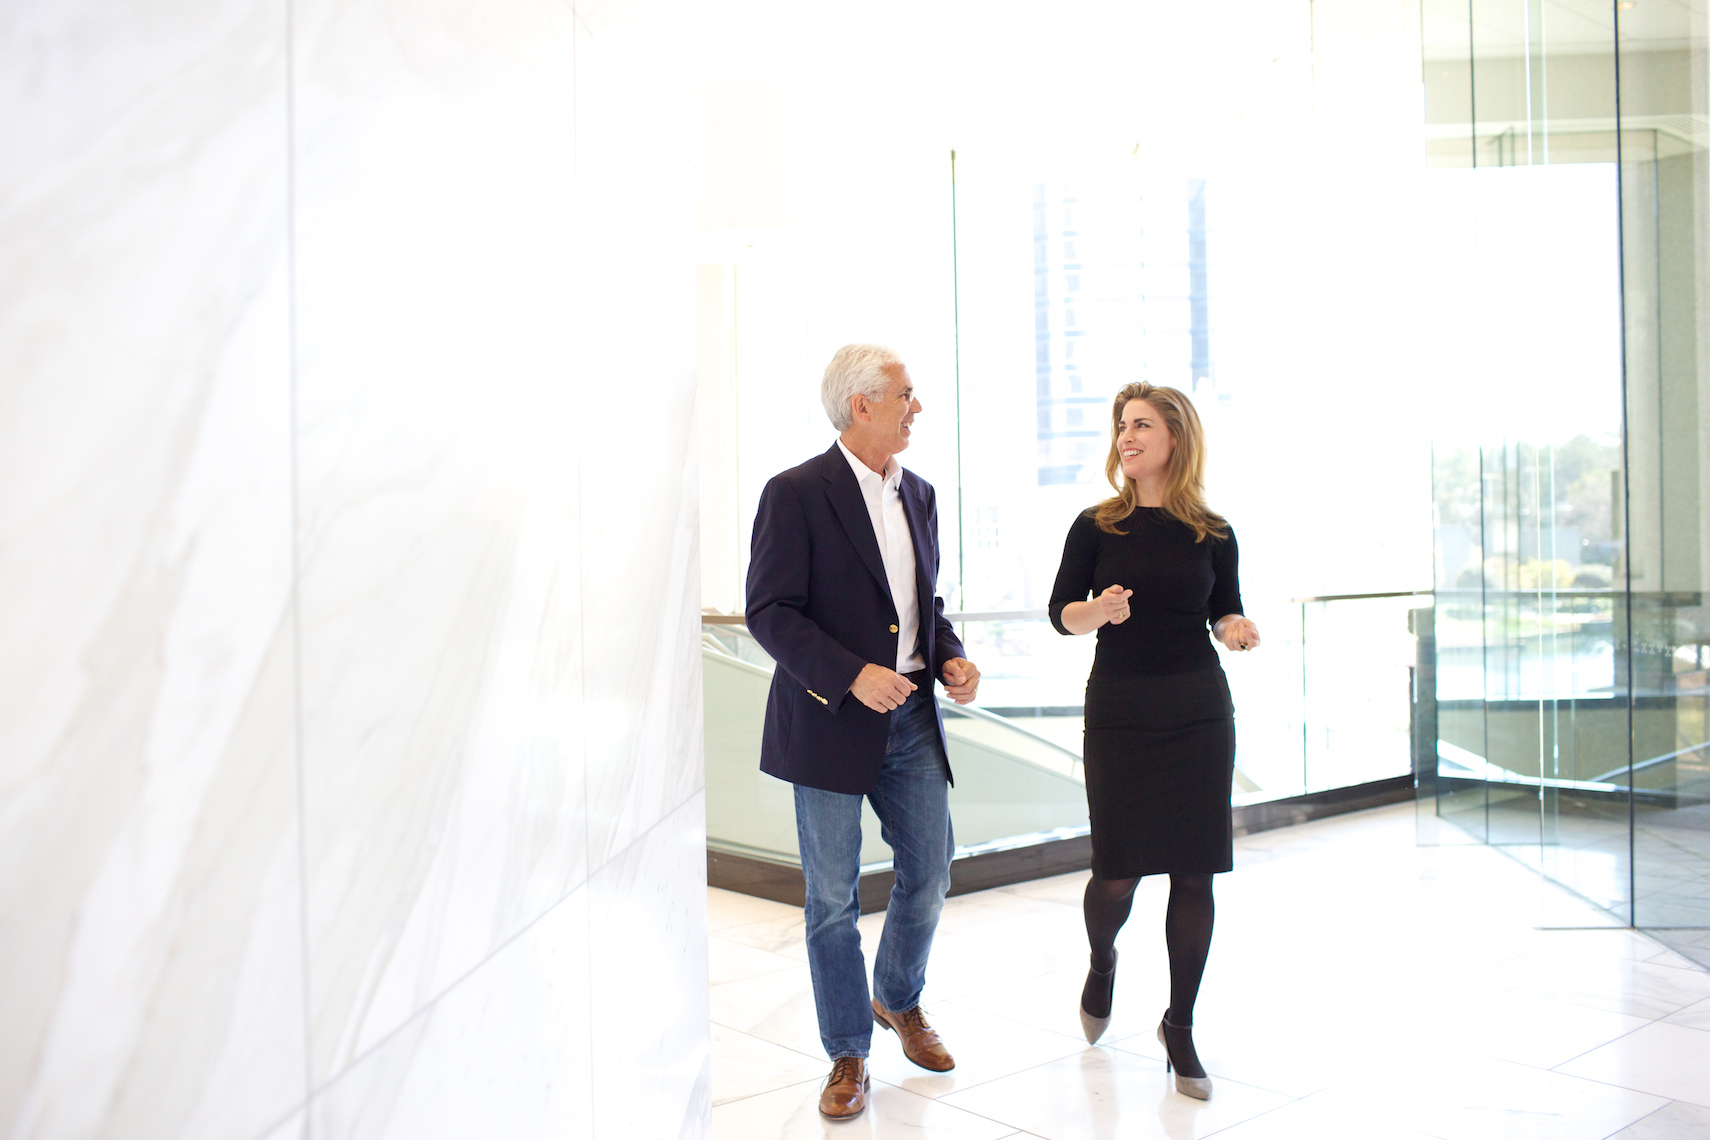 Corporate portrait photography Big Fish Studios man and woman walk and consult in lobby_Robert-Holland